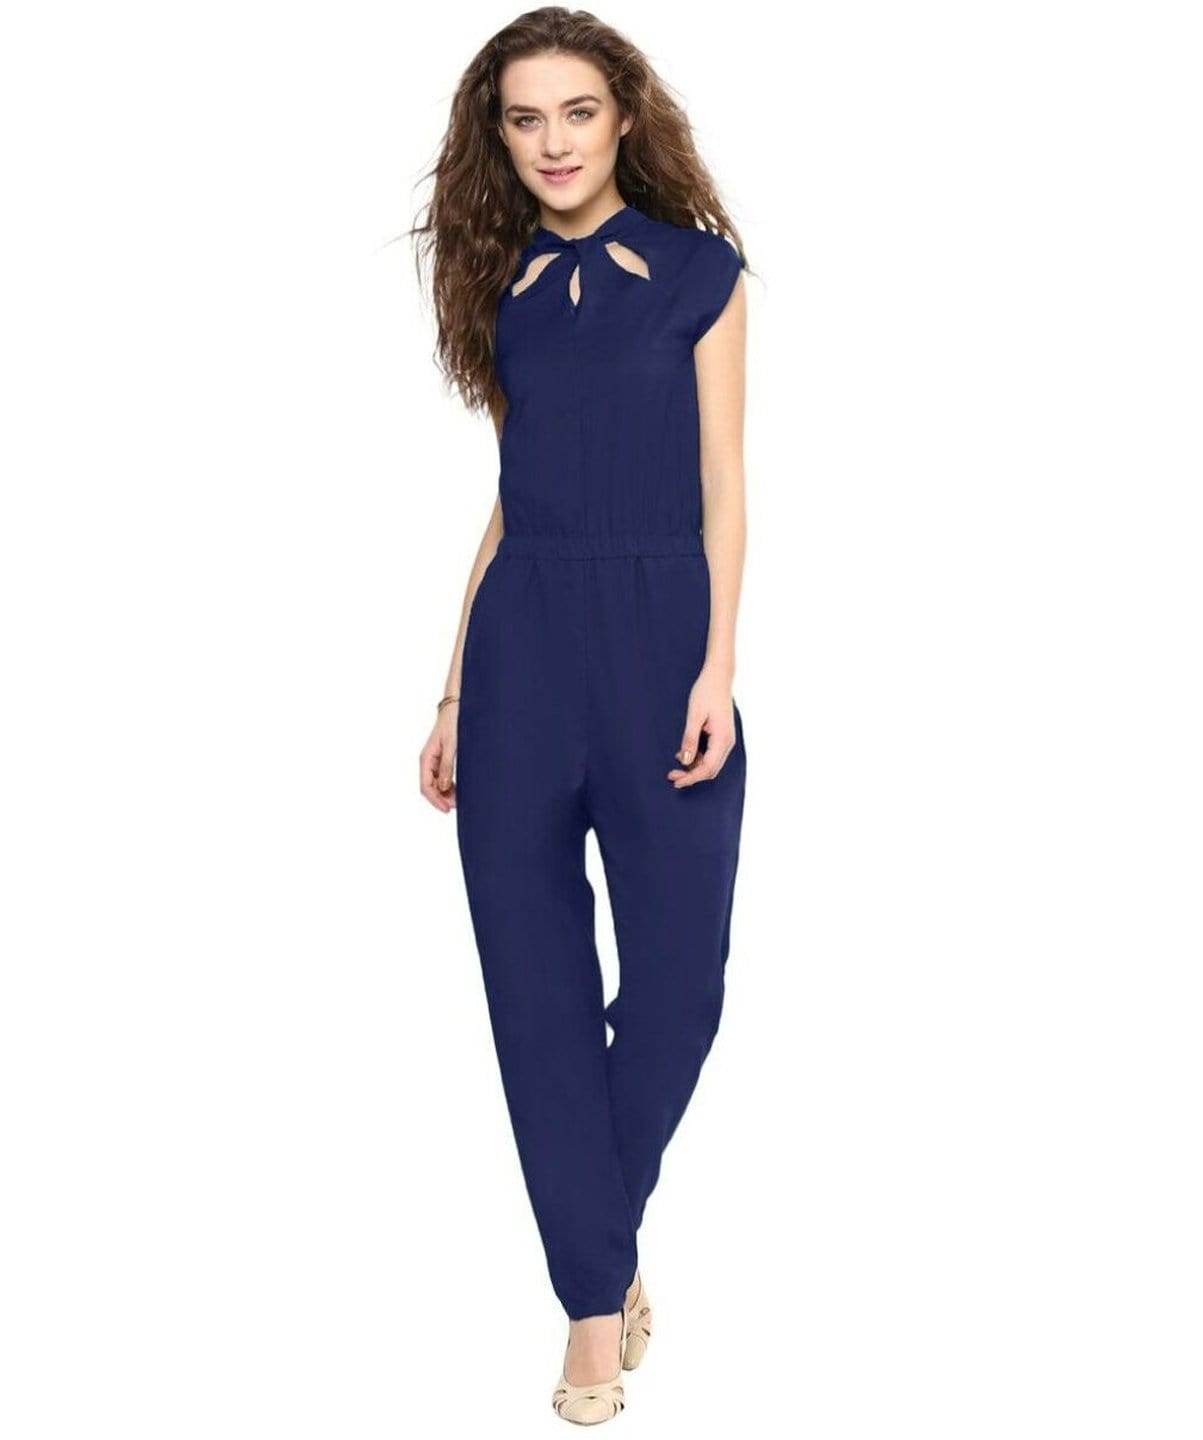 Navy Neck Cut-out Jumpsuit - Uptownie